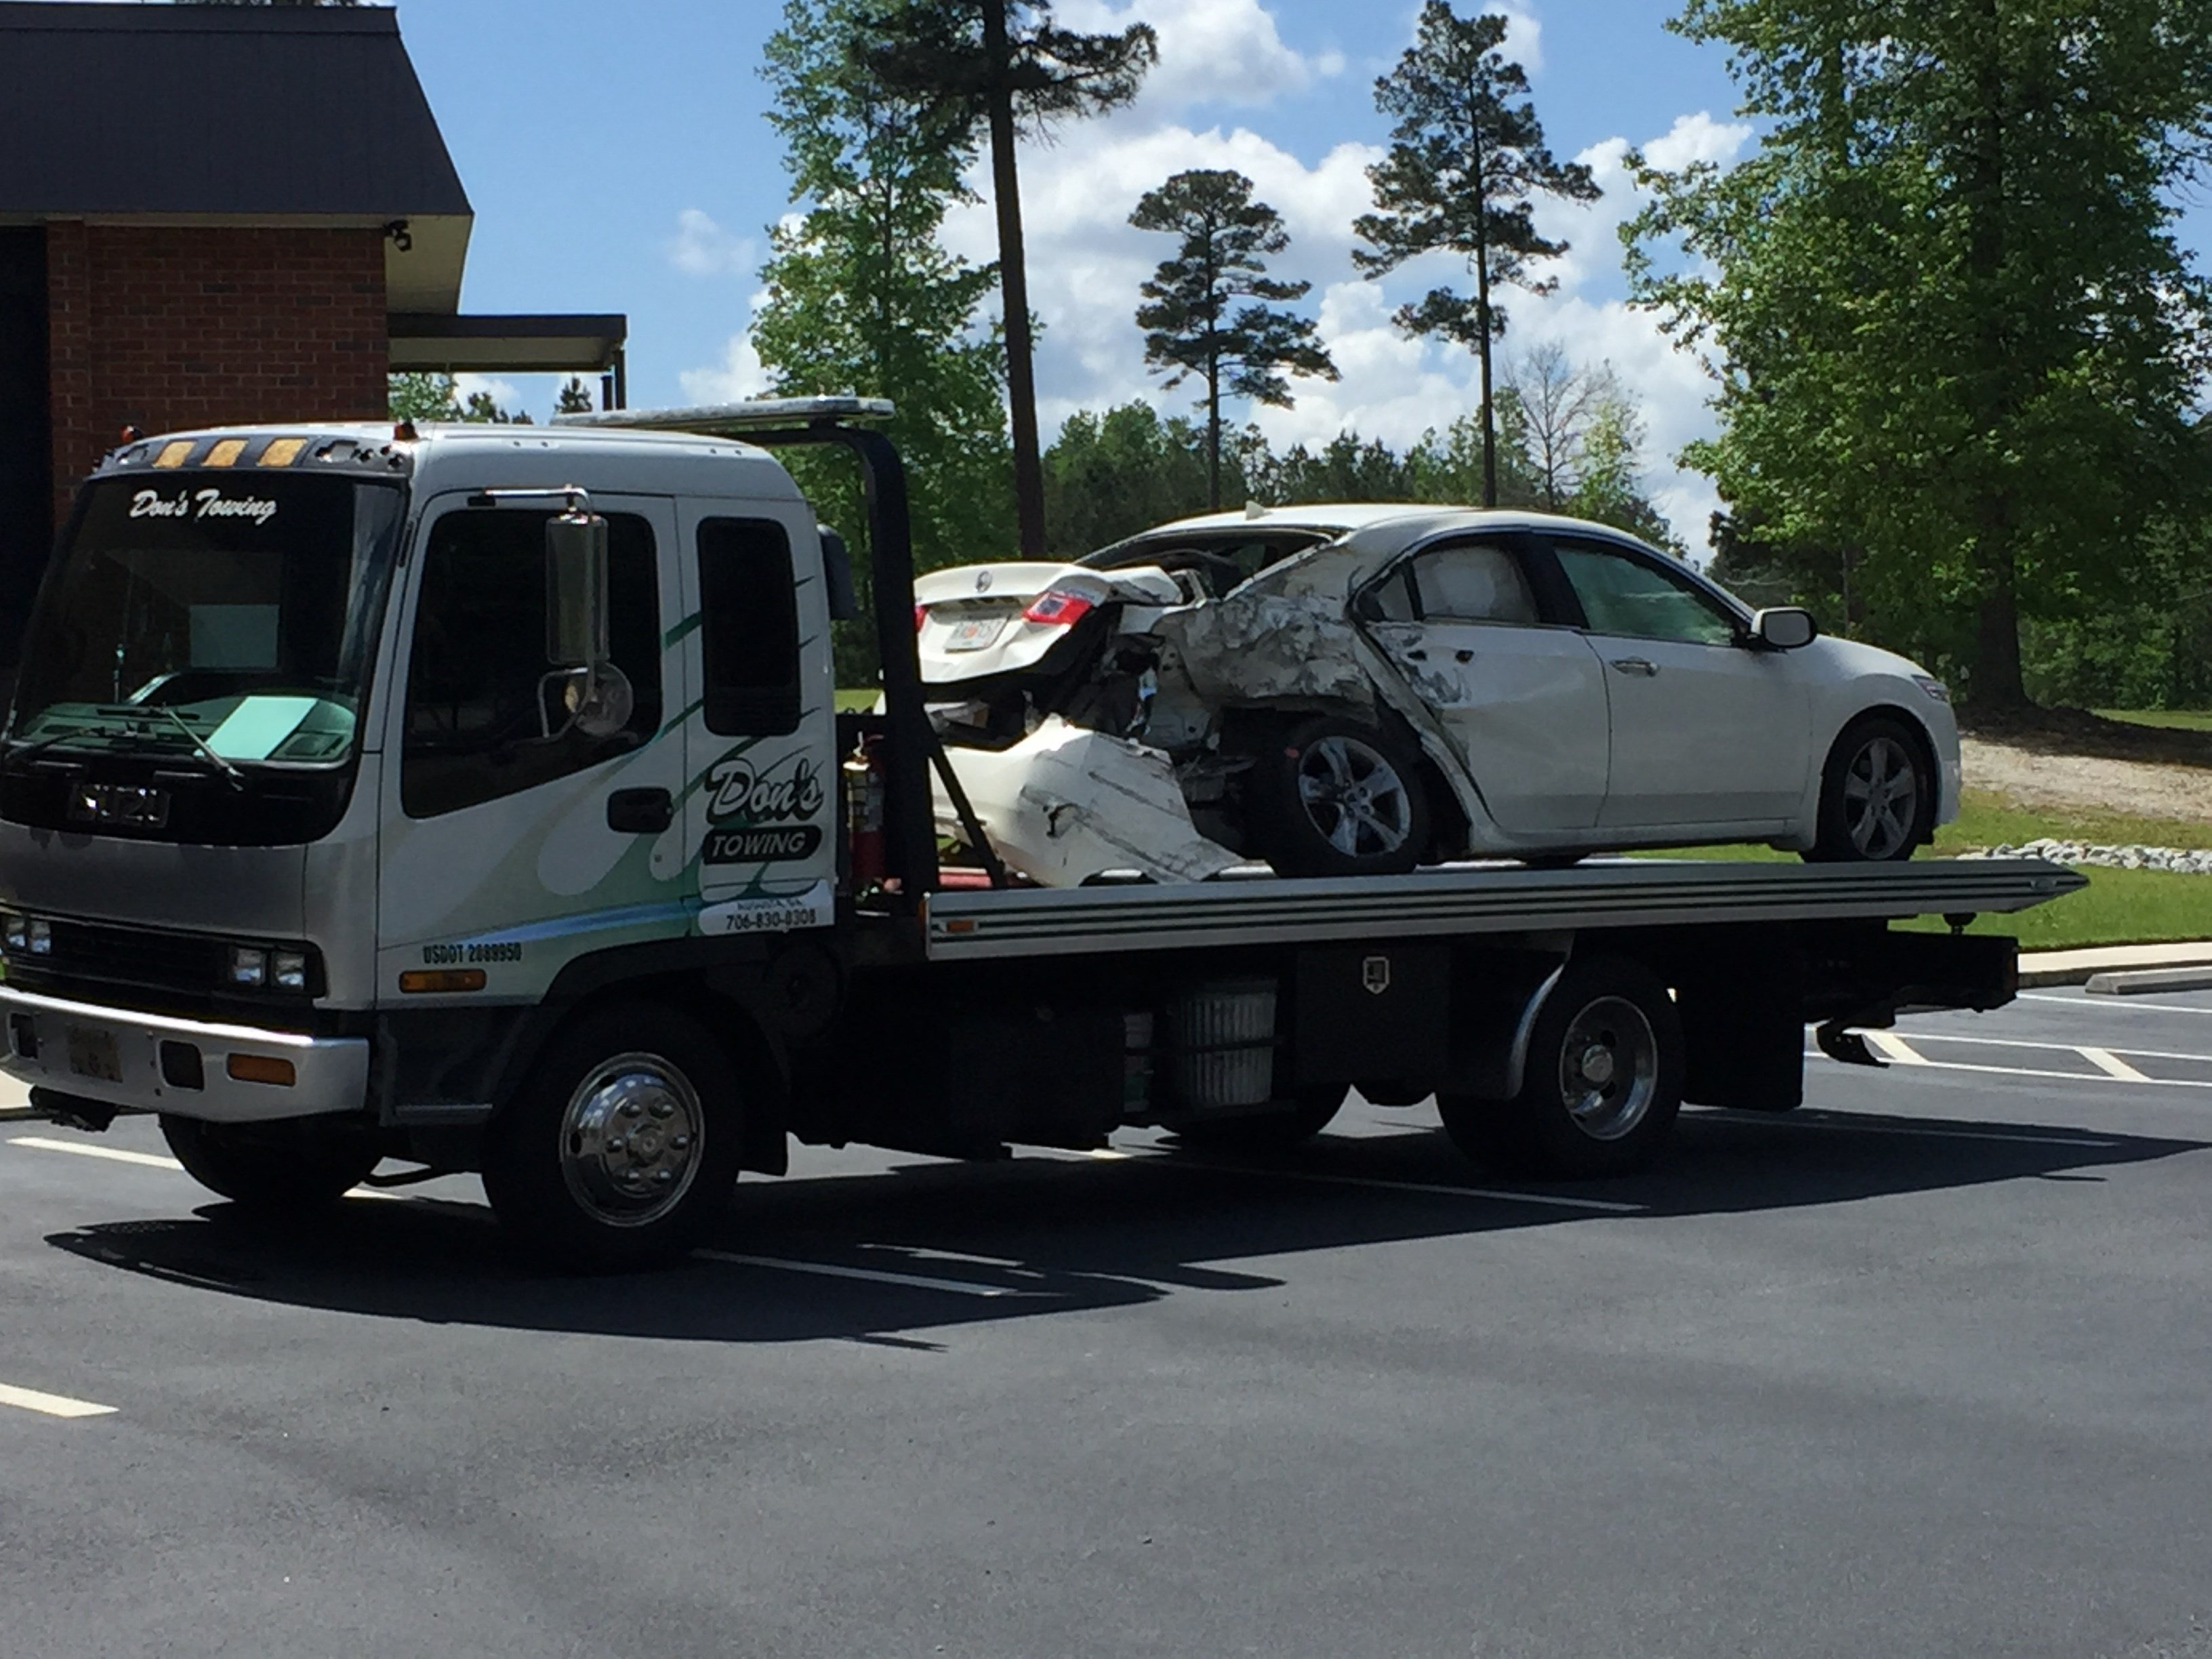 Deadly collision on Wrightsboro Rd. in Grovetown 4/20/17 (WFXG)